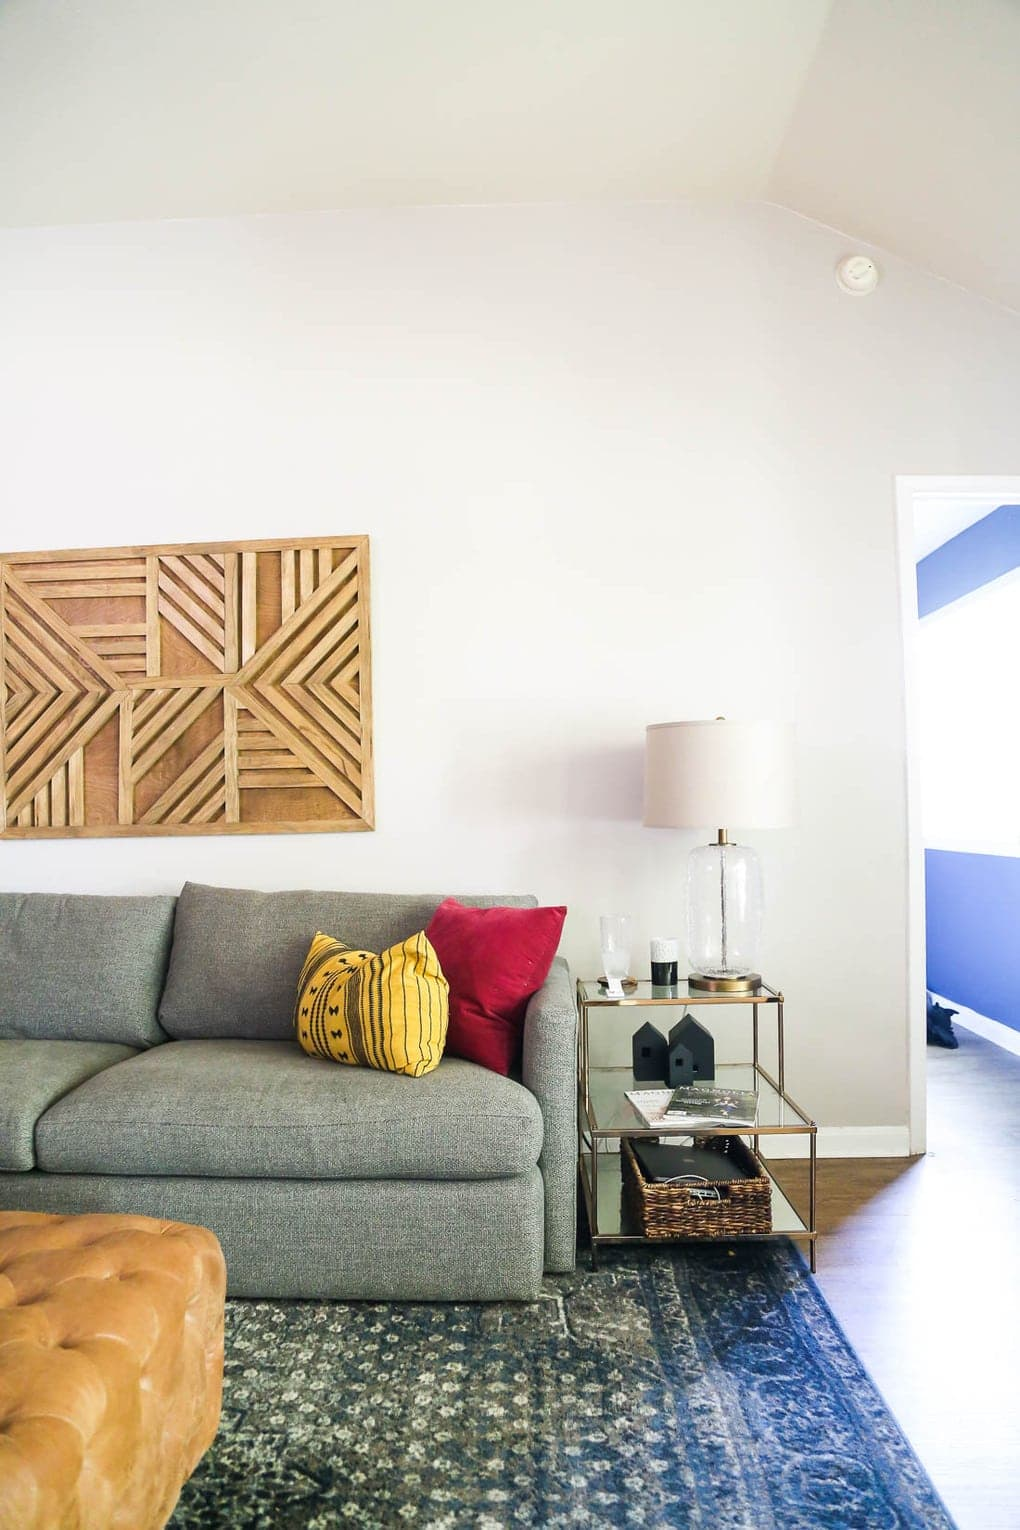 Getting the right size furniture - tips for how to decorate a living room